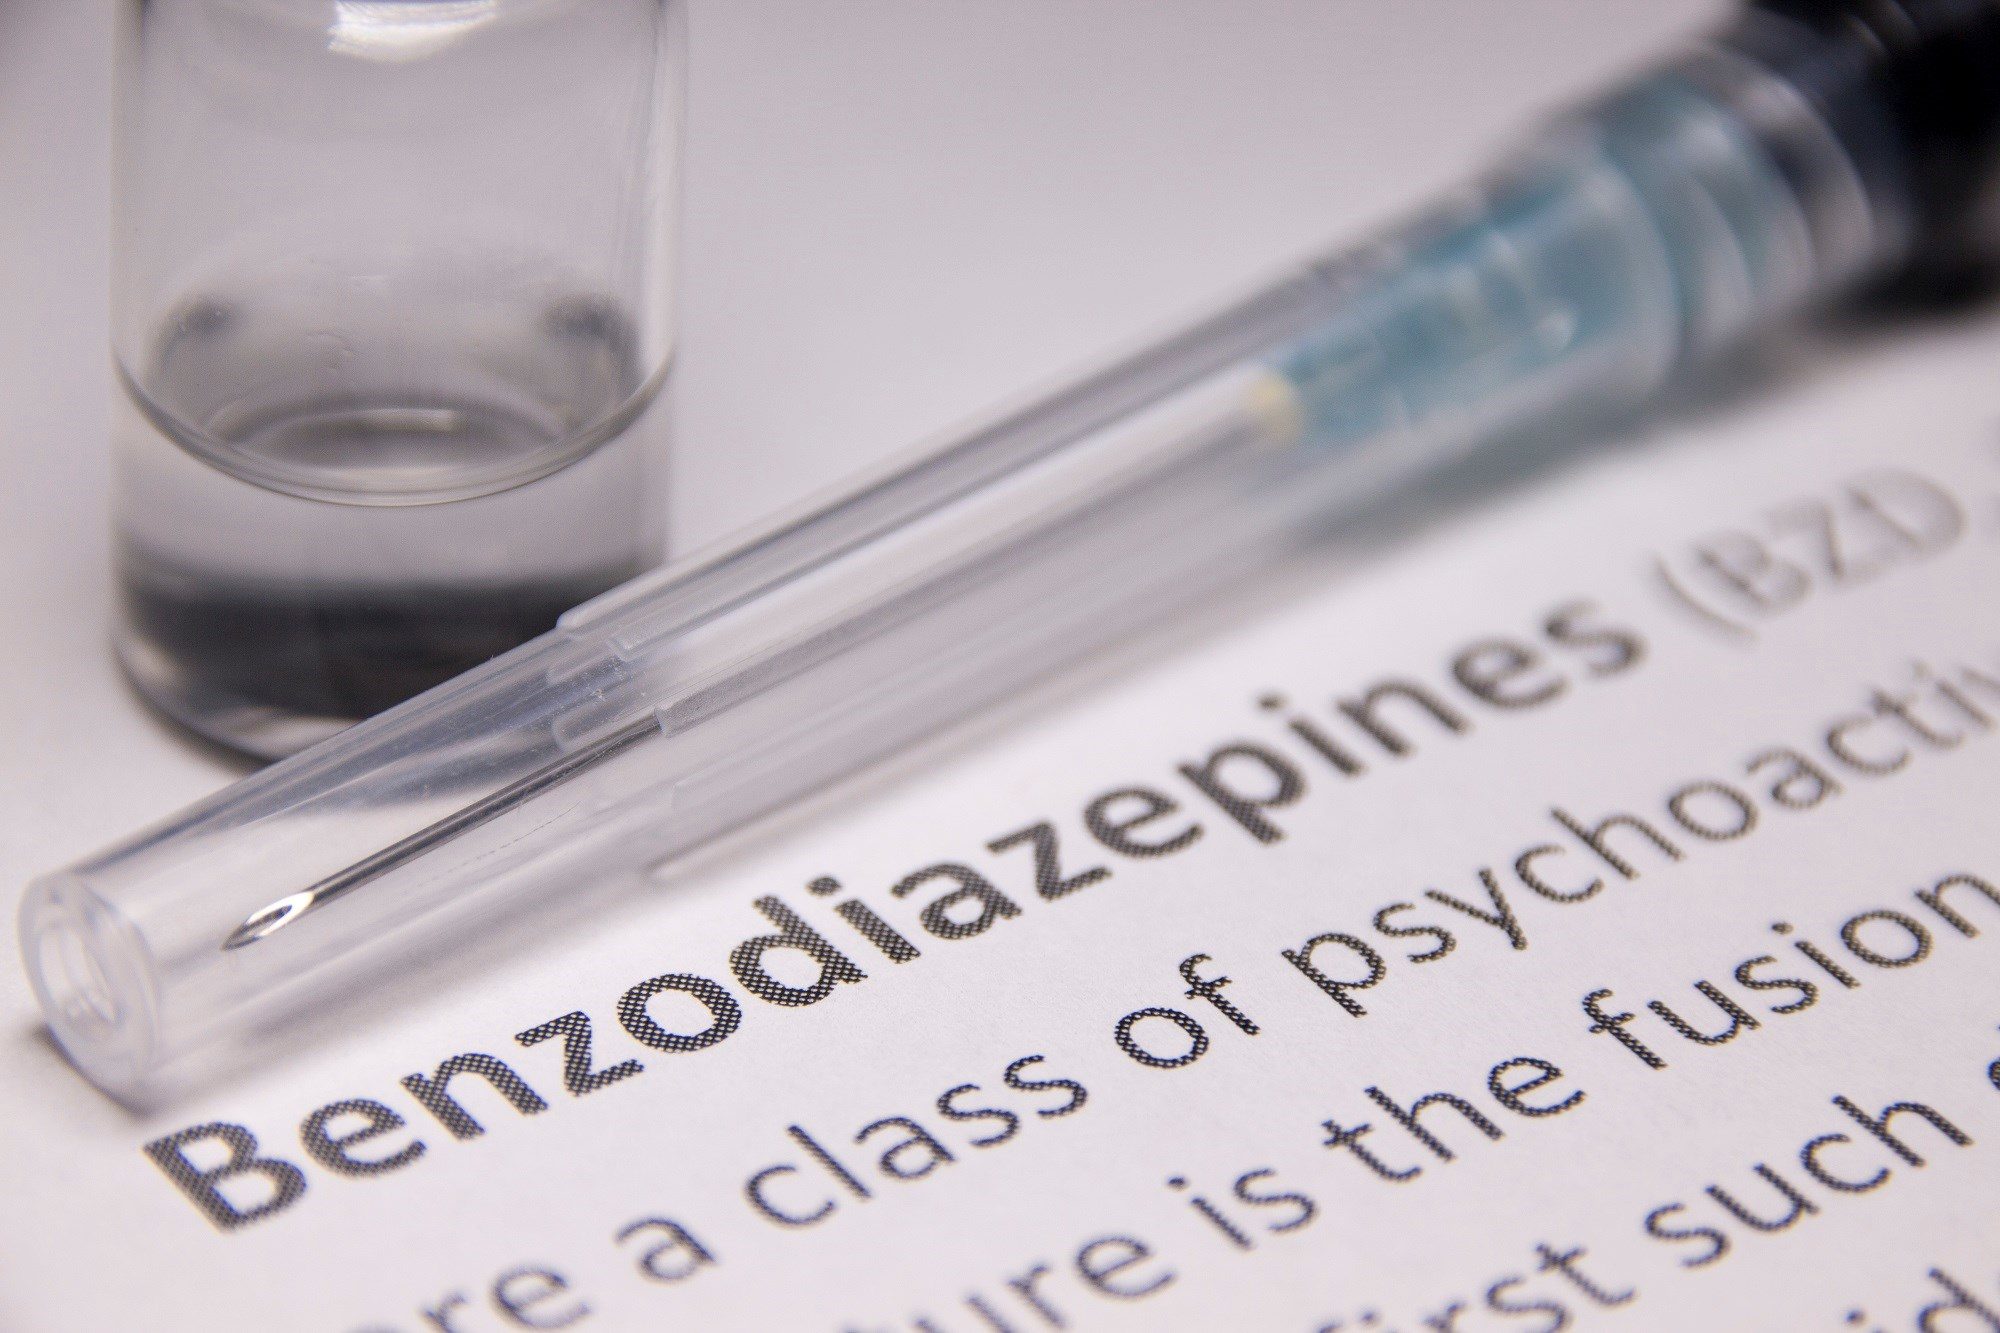 COPD Mortality Does Not Increase From Long-Term Use of Benzodiazepines